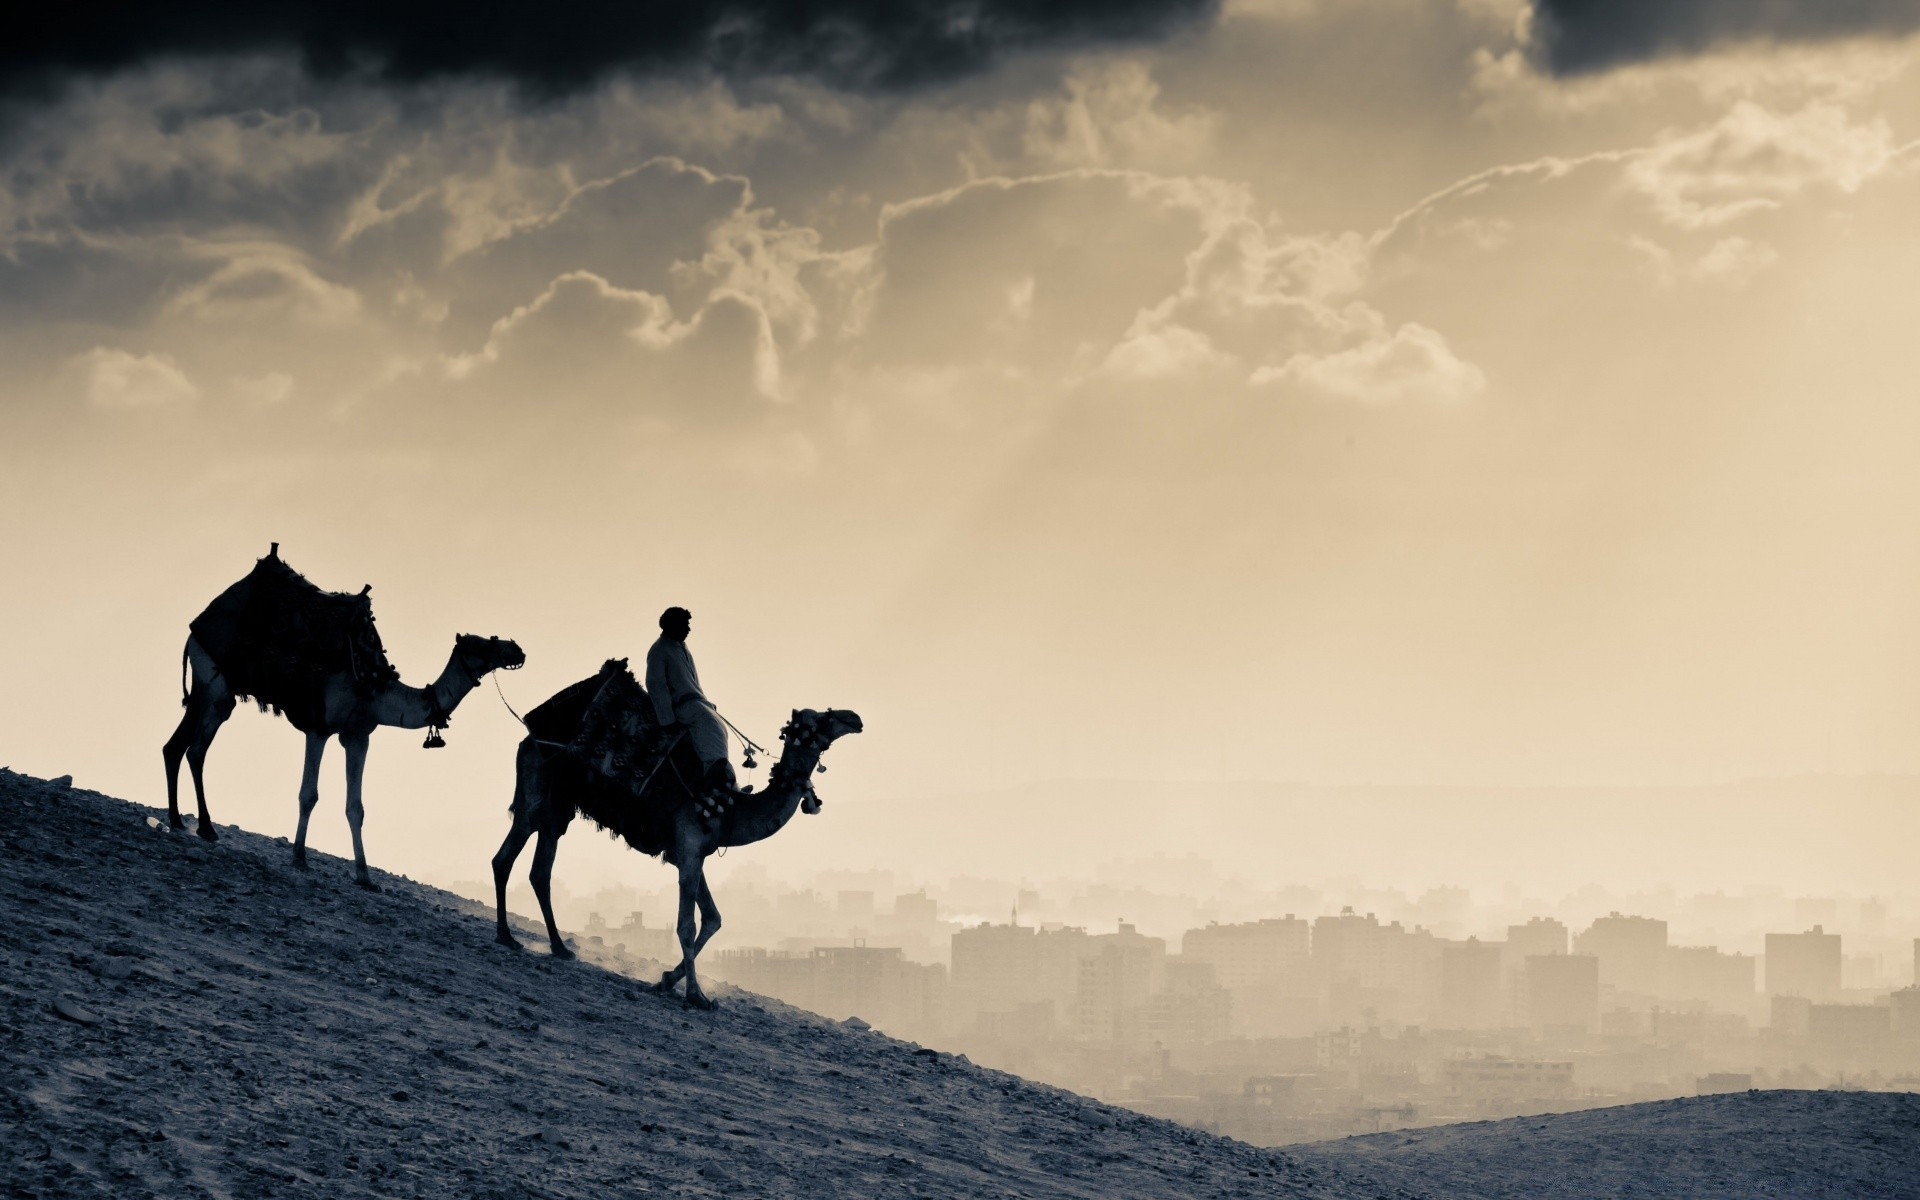 desert mammal camel travel sitting landscape cavalry one sky outdoors backlit mountain transportation system sunset dawn